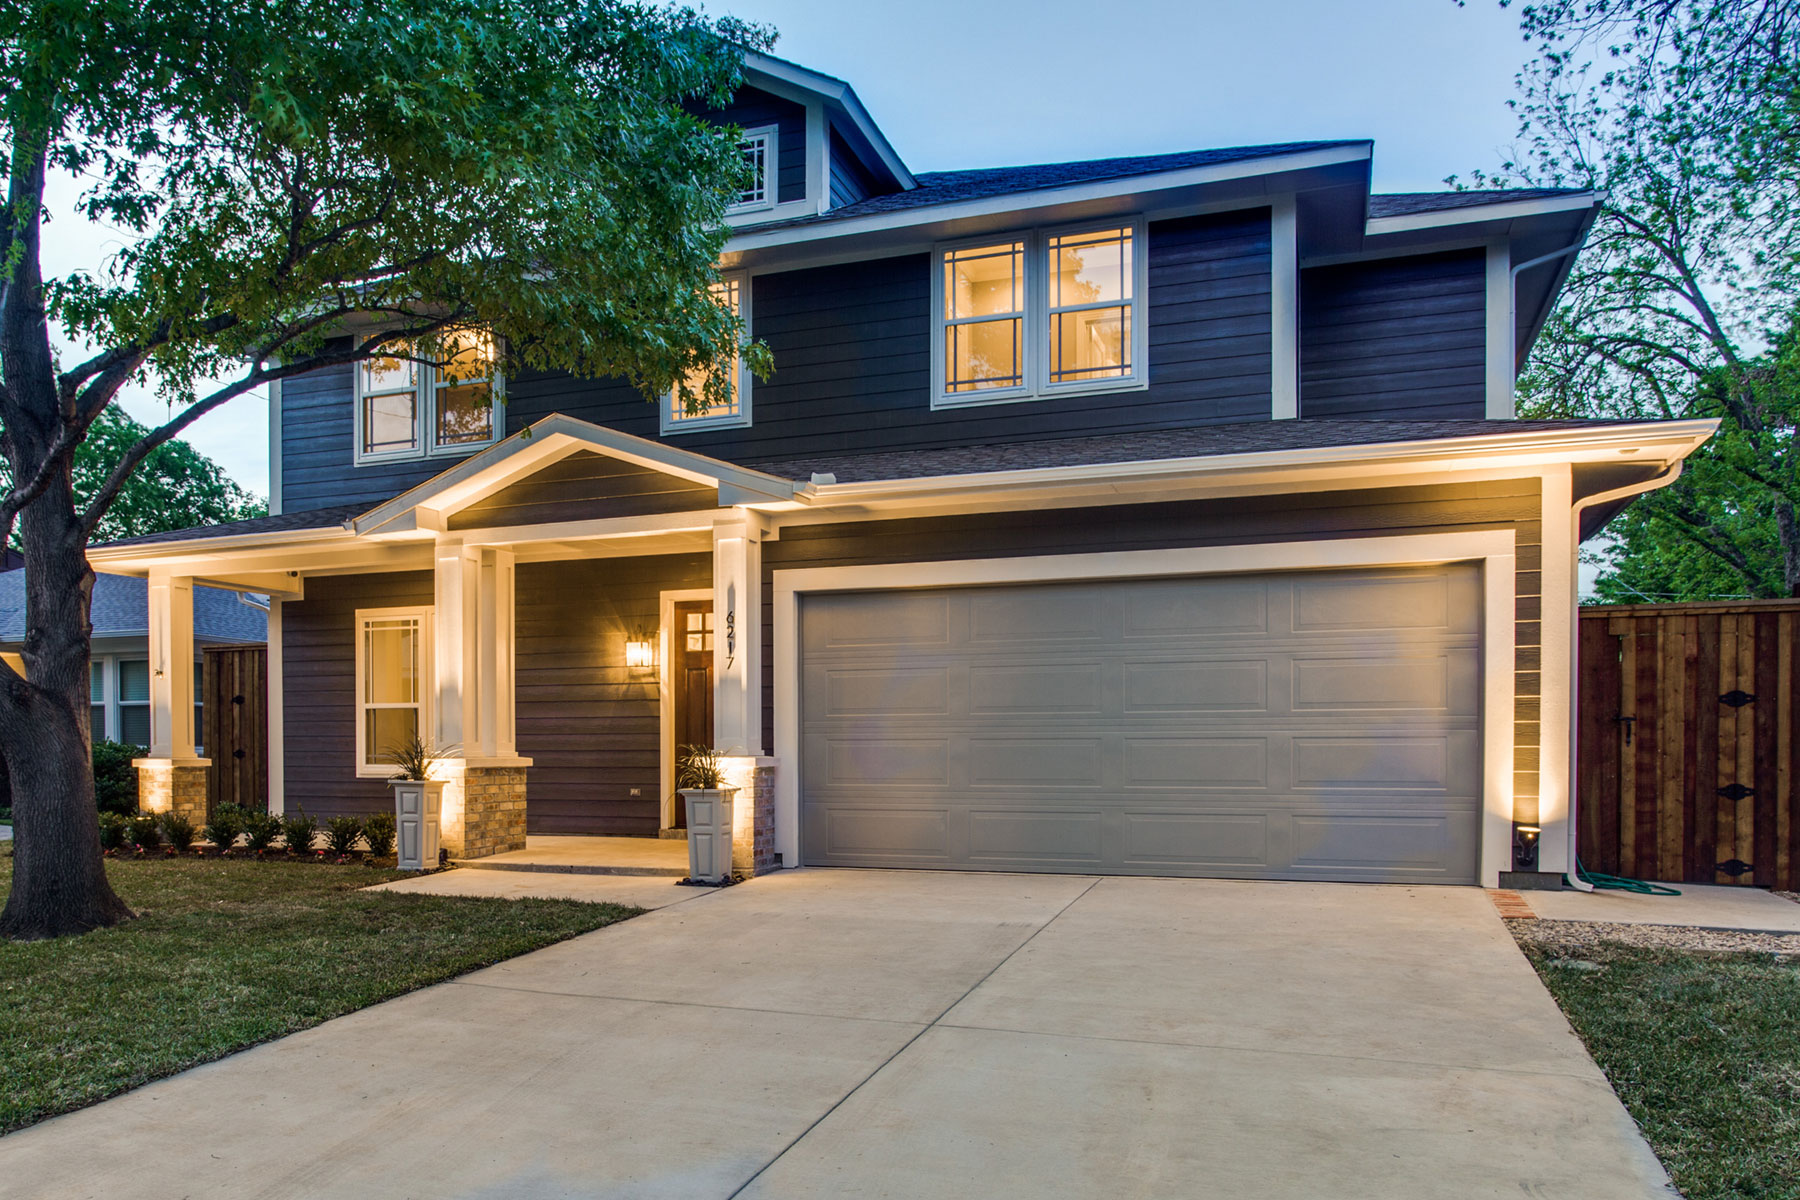 Garage Apartment Lakewood Dallas Custom Home In Lakewood Dallas Tx Sold Desco Fine Homes